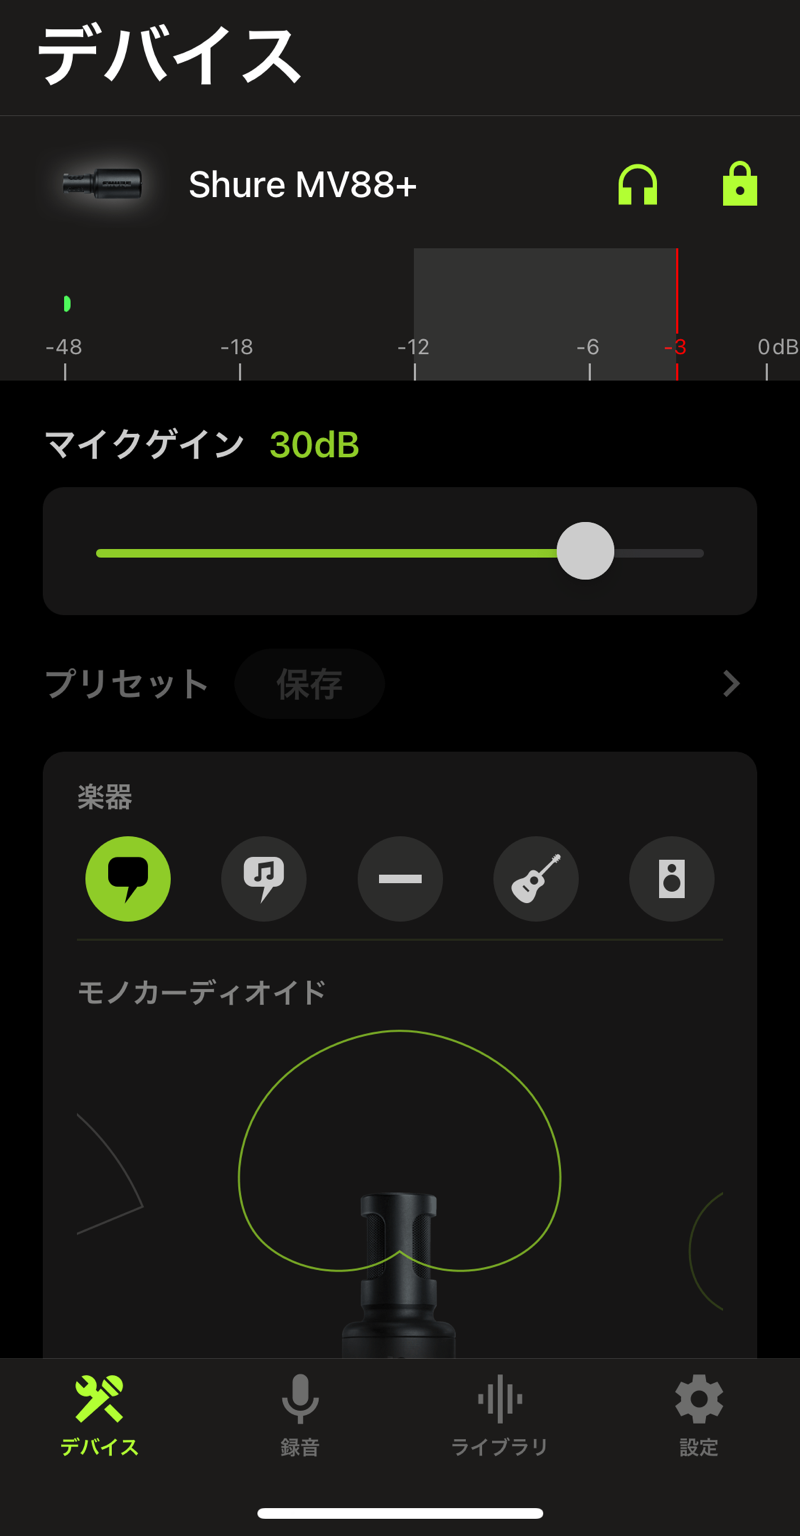 Shure iosapp mv88plus 03